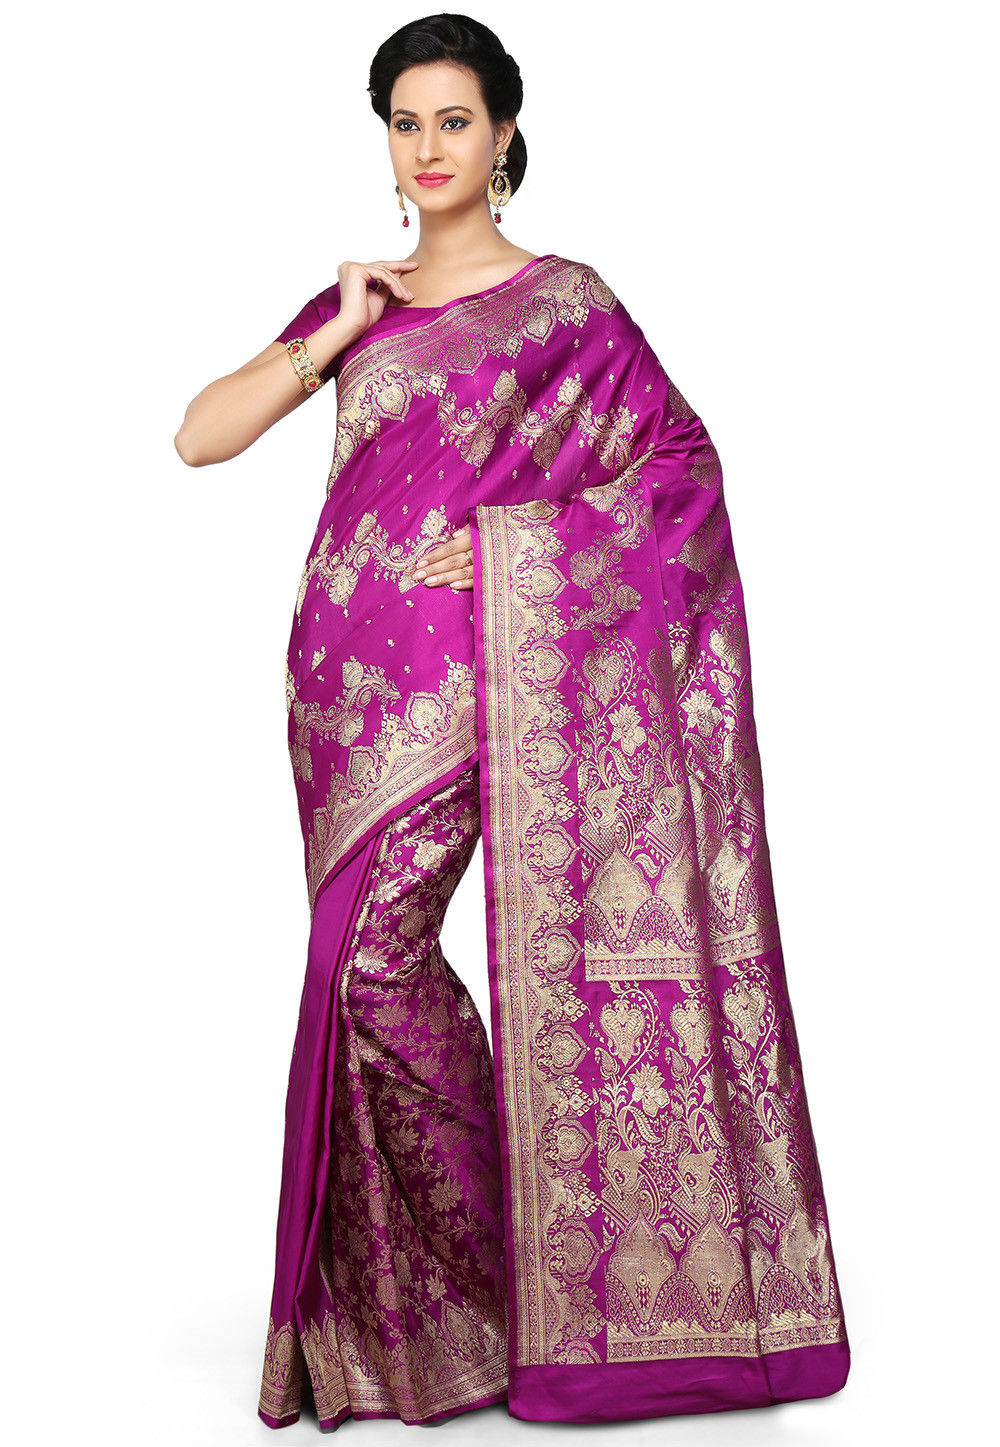 Banarasi Pure Silk Handloom Saree in Magenta